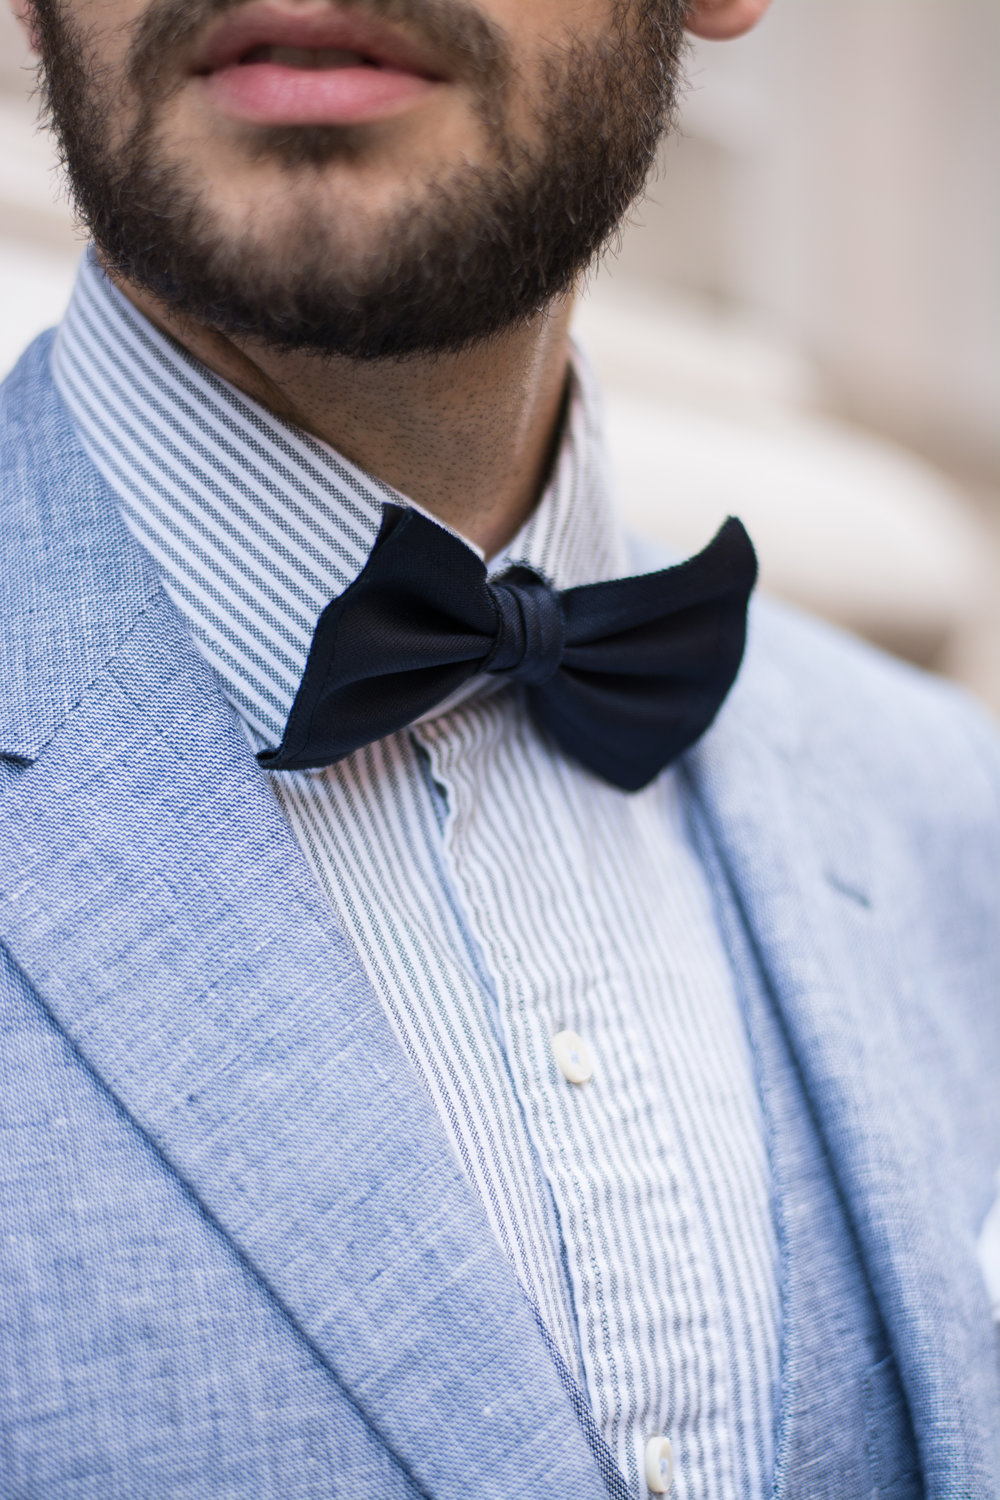 How To Style a Bow Tie For A Wedding